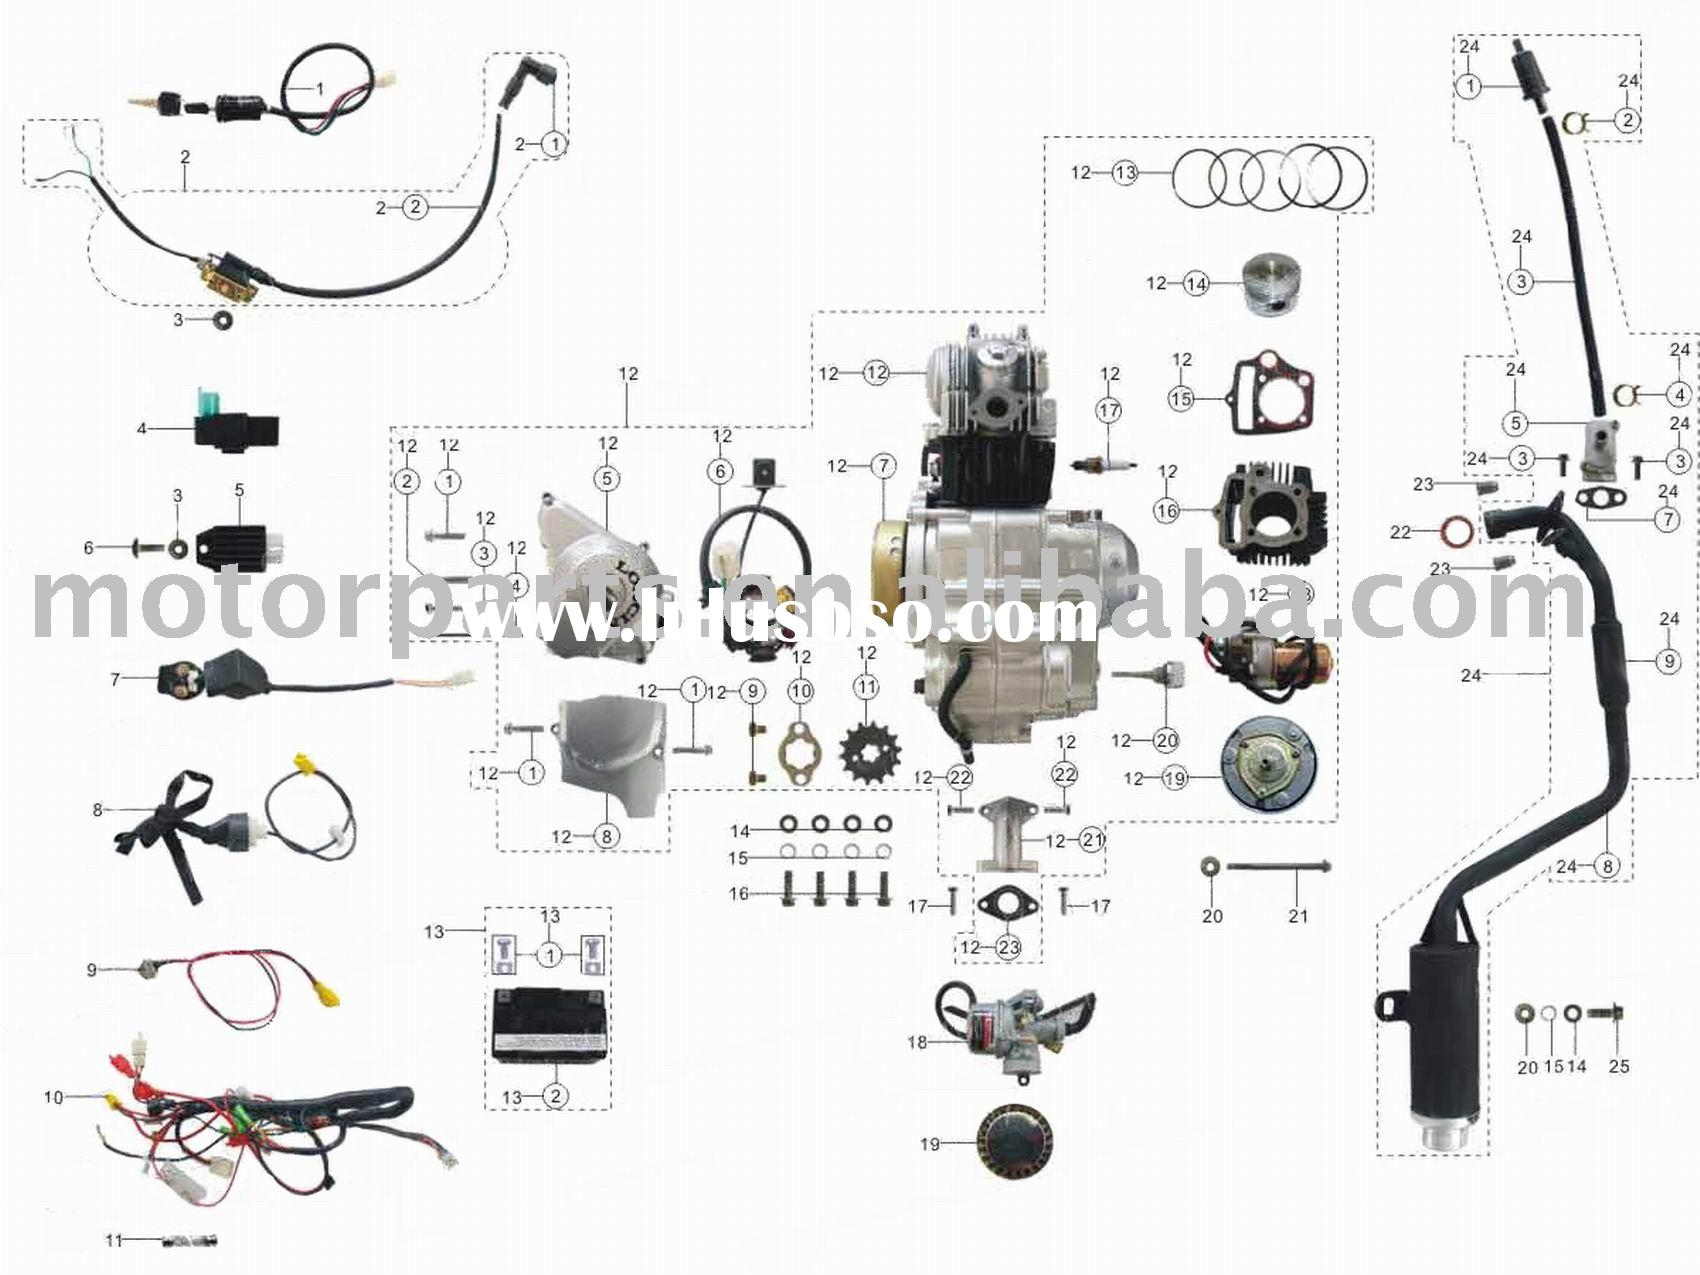 wiring diagram for a panther 110cc atv, wiring diagram for